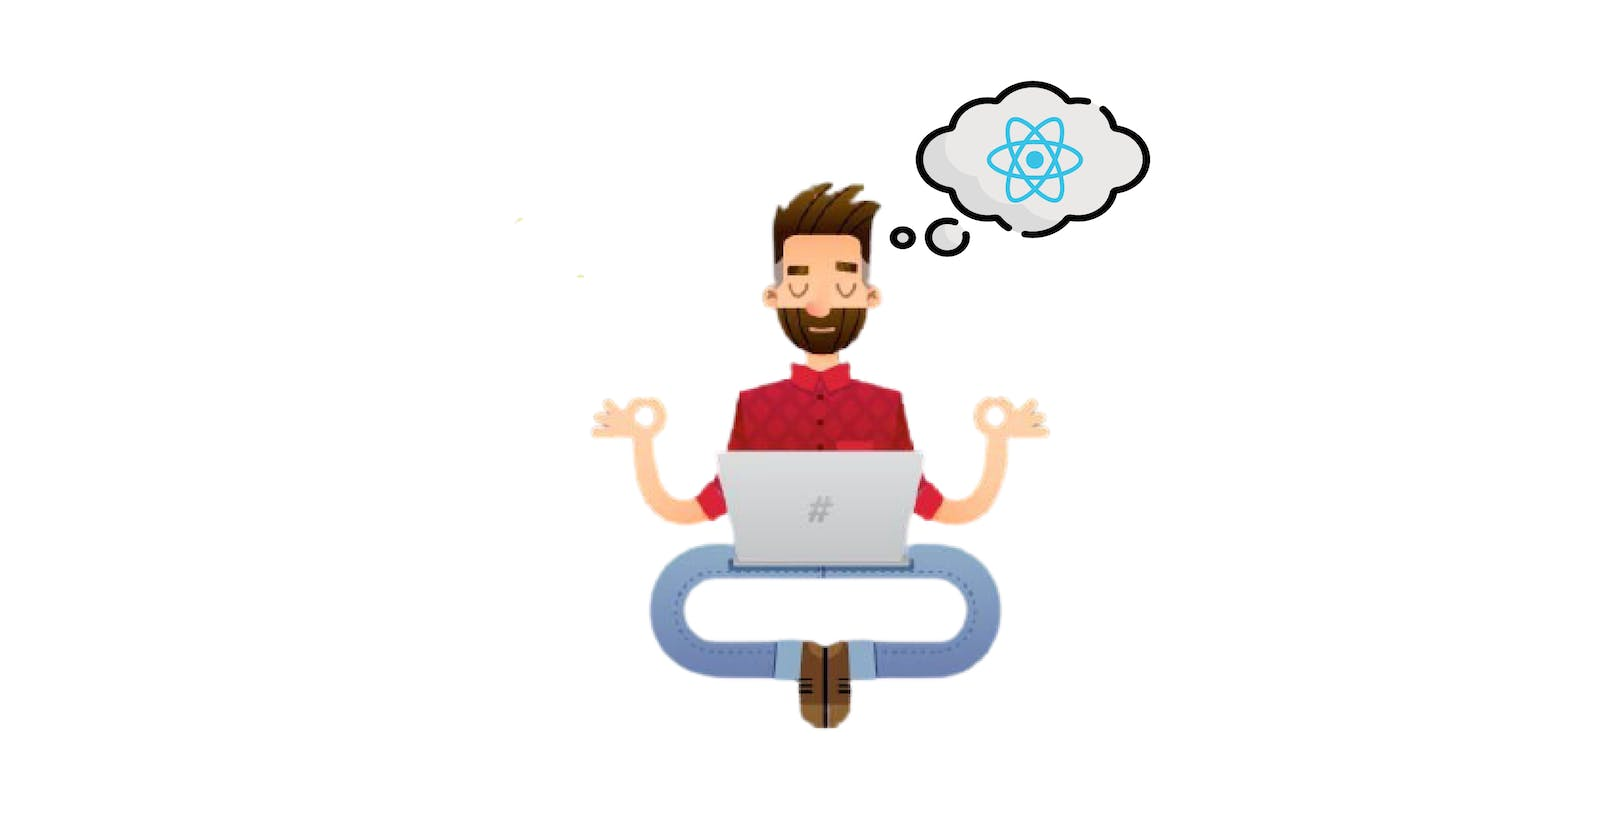 Thinking in React: step-by-step thought process for building a React App